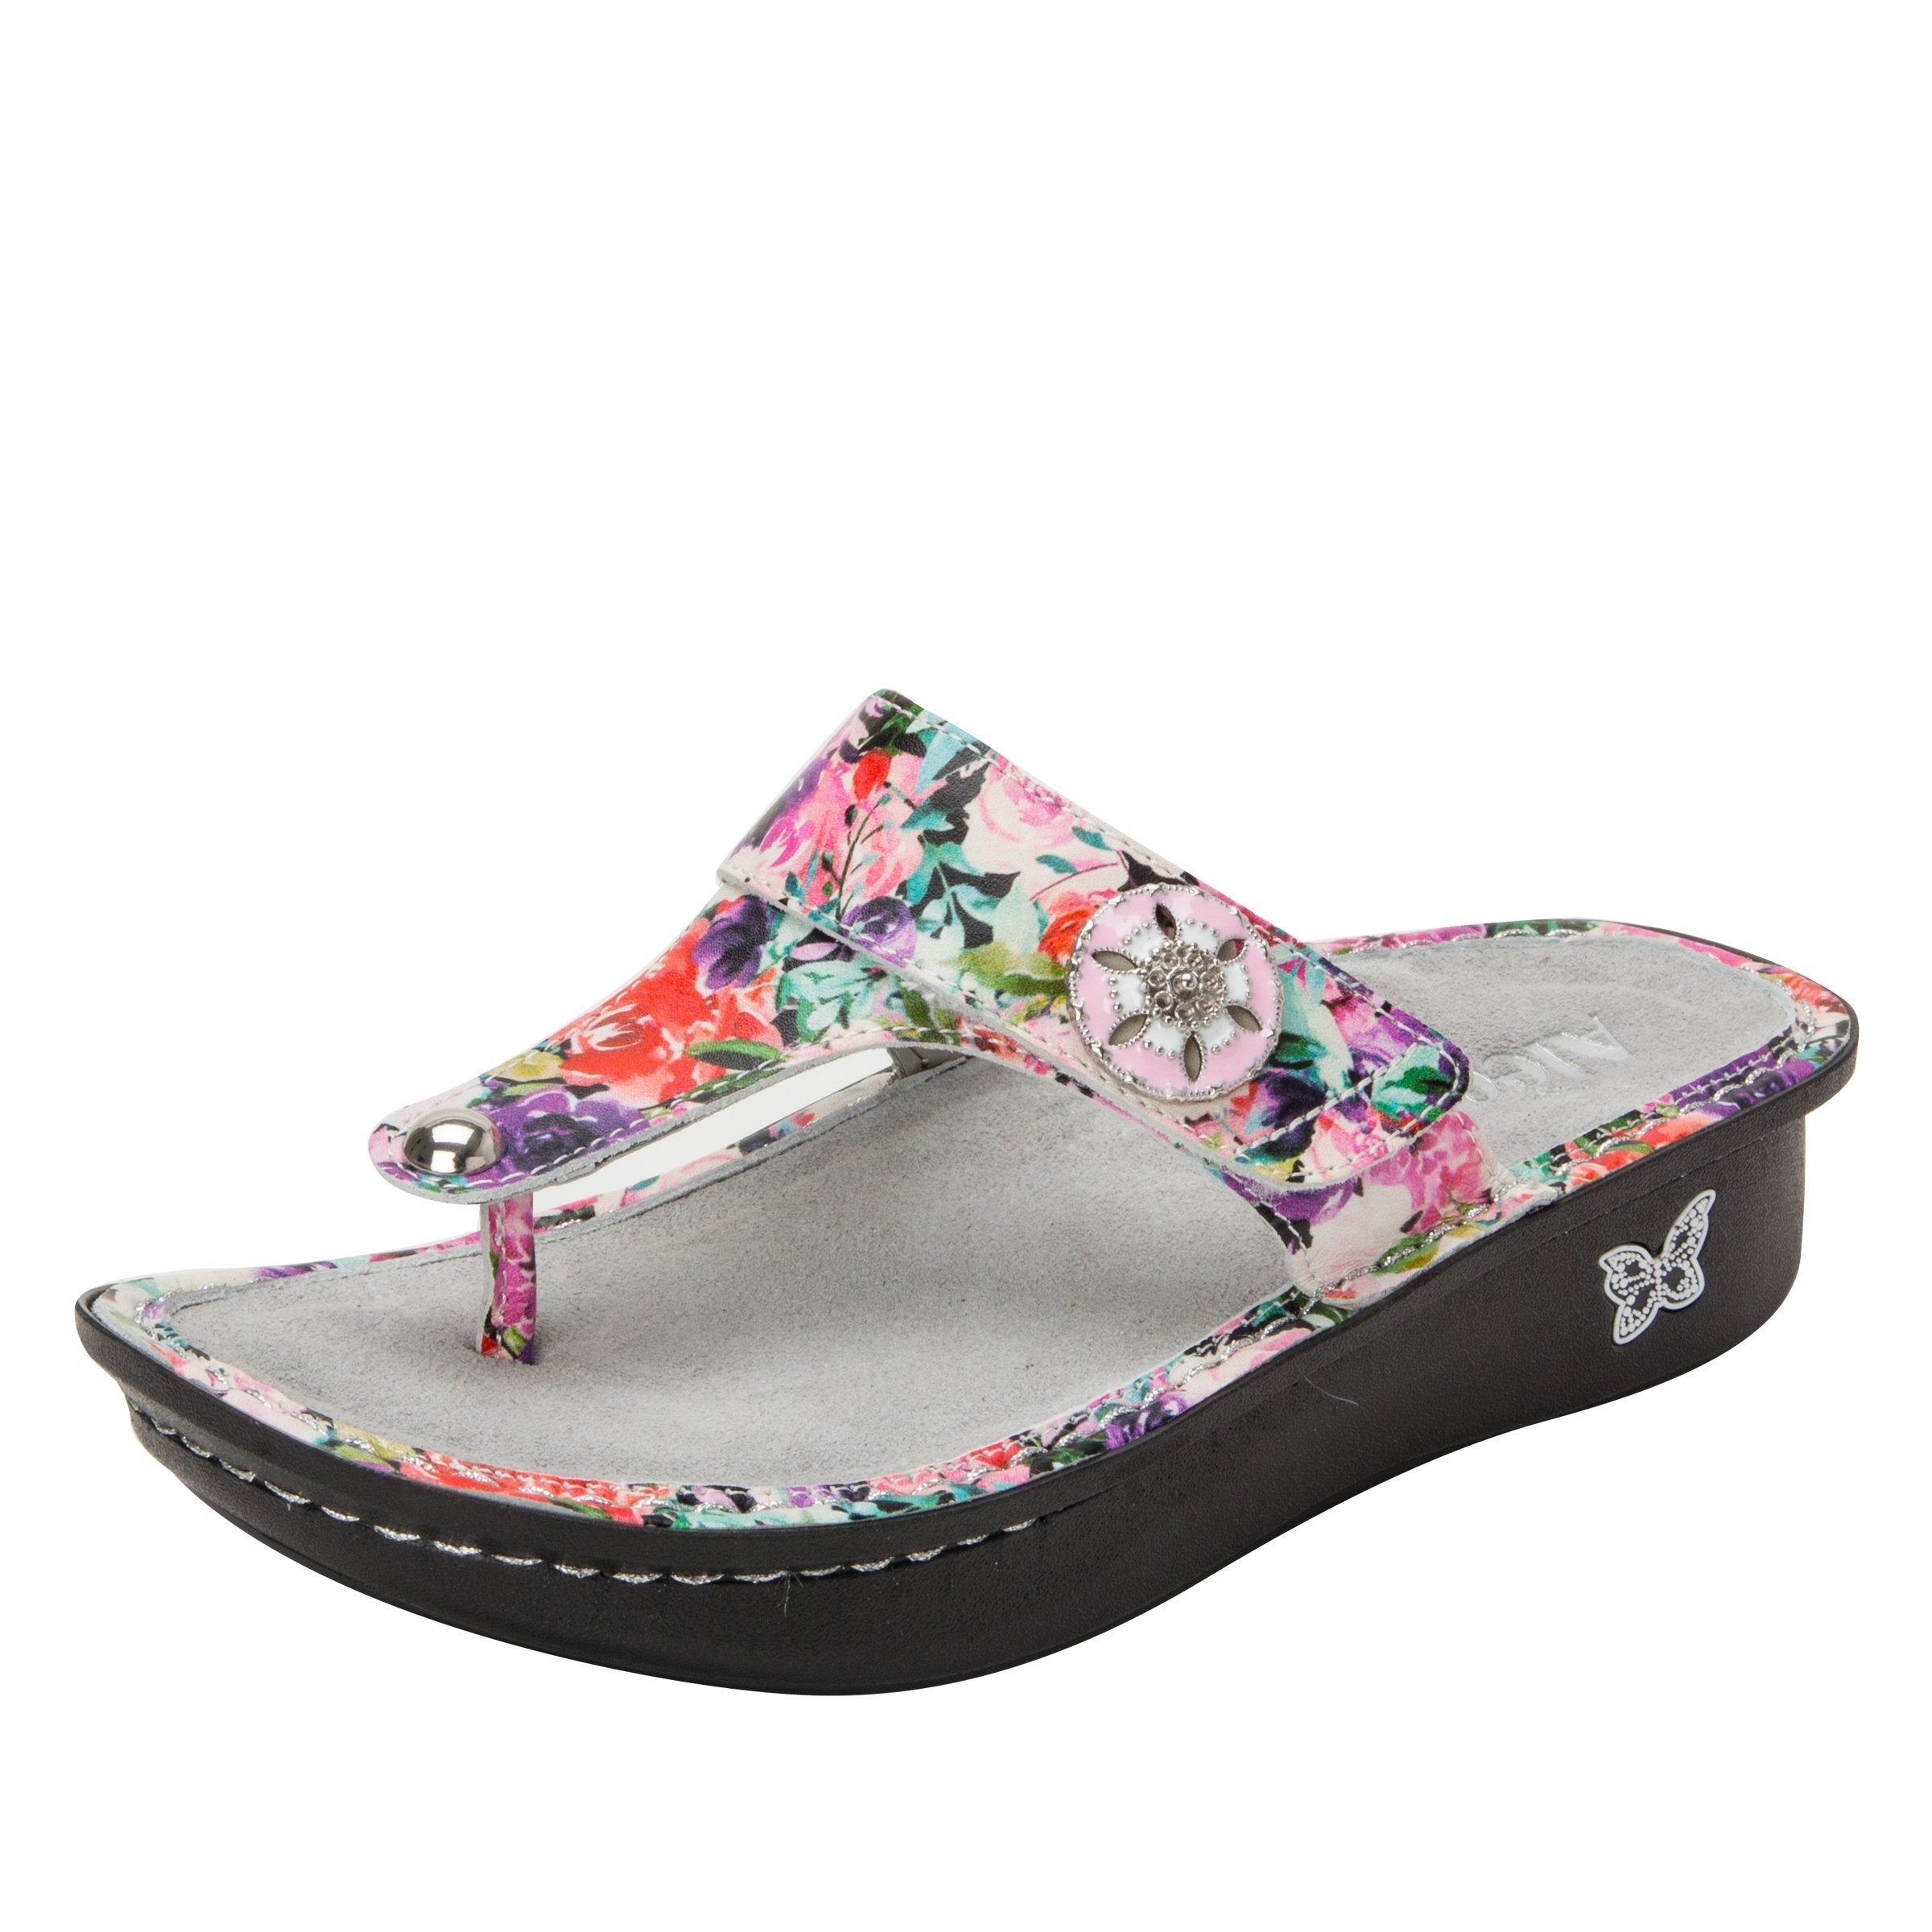 Up Alegria Carina Lighten Sandal Shoes XZiukP